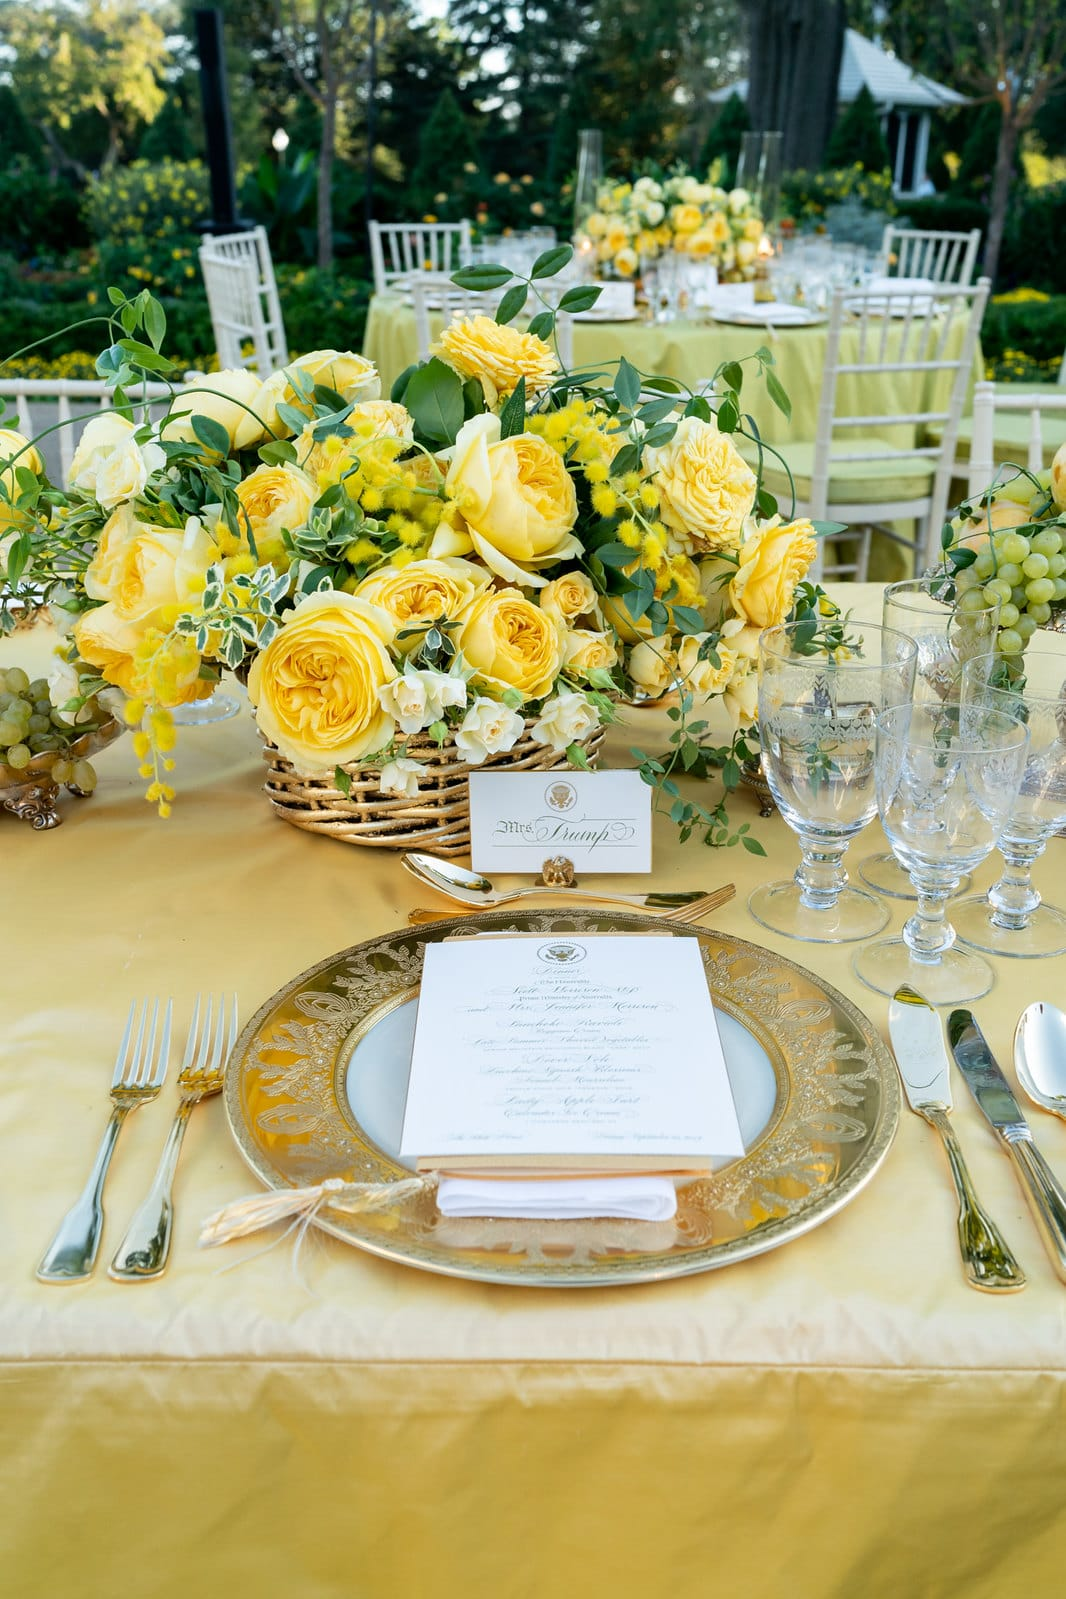 View of dinner plate setting on table with flowers.